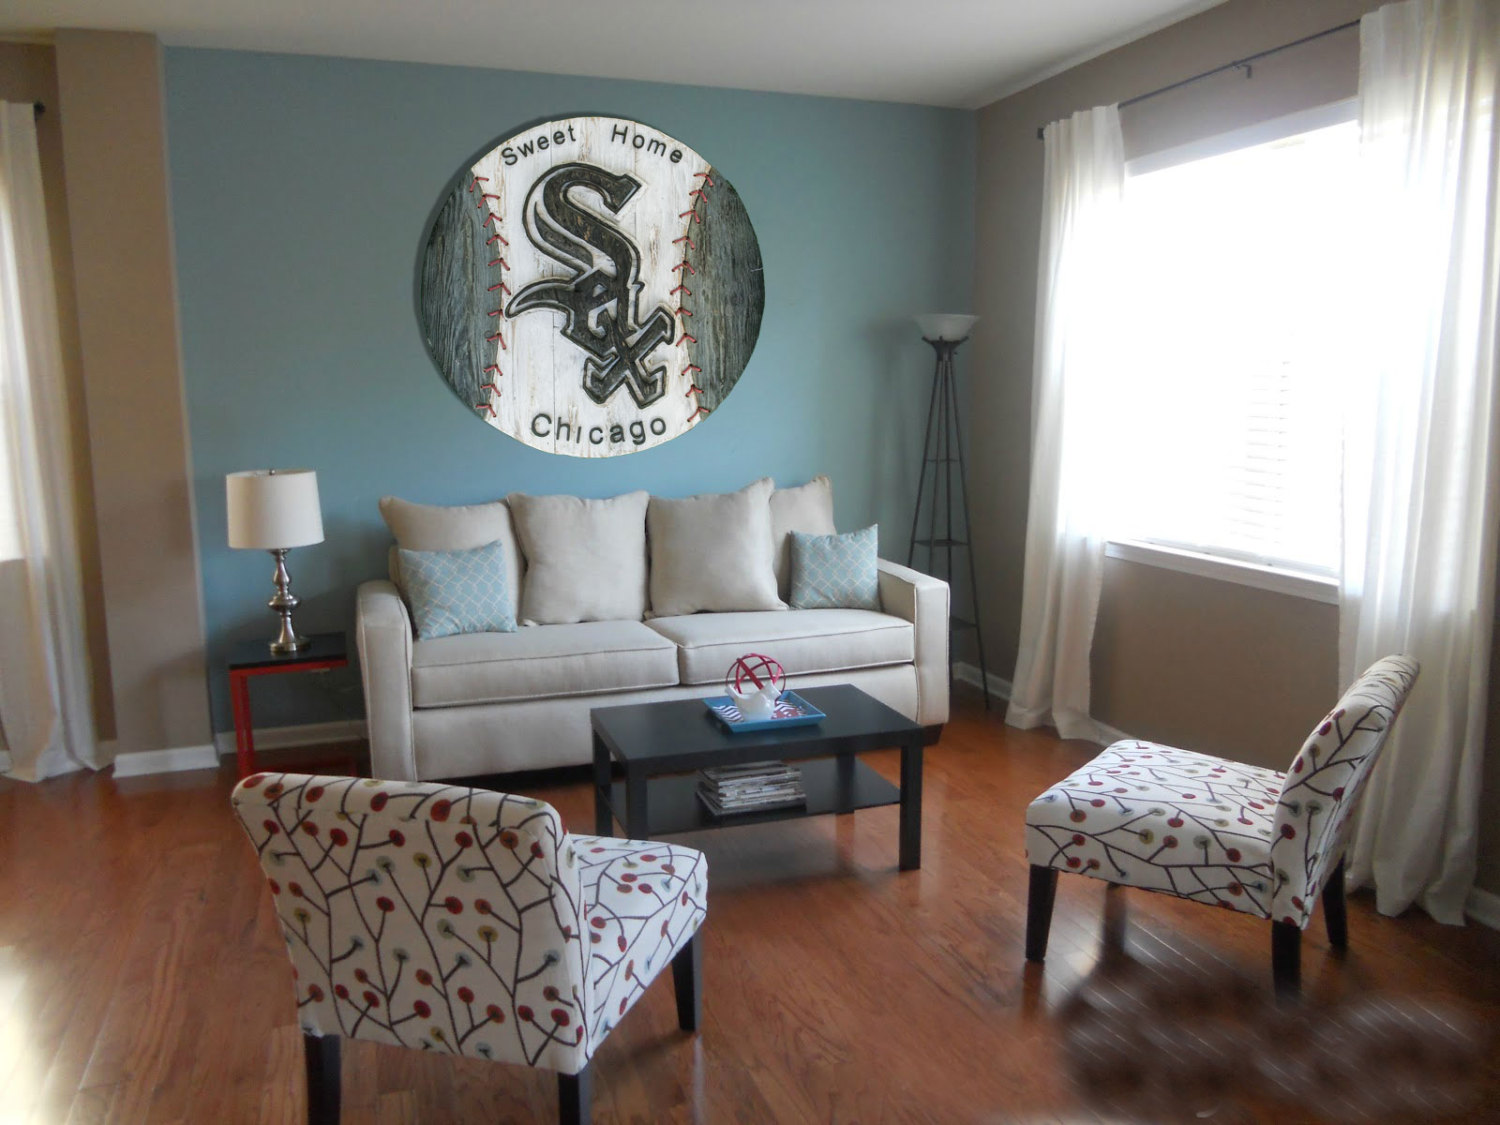 Chicago White Sox Handmade Distressed Wood Sign Vintage Art